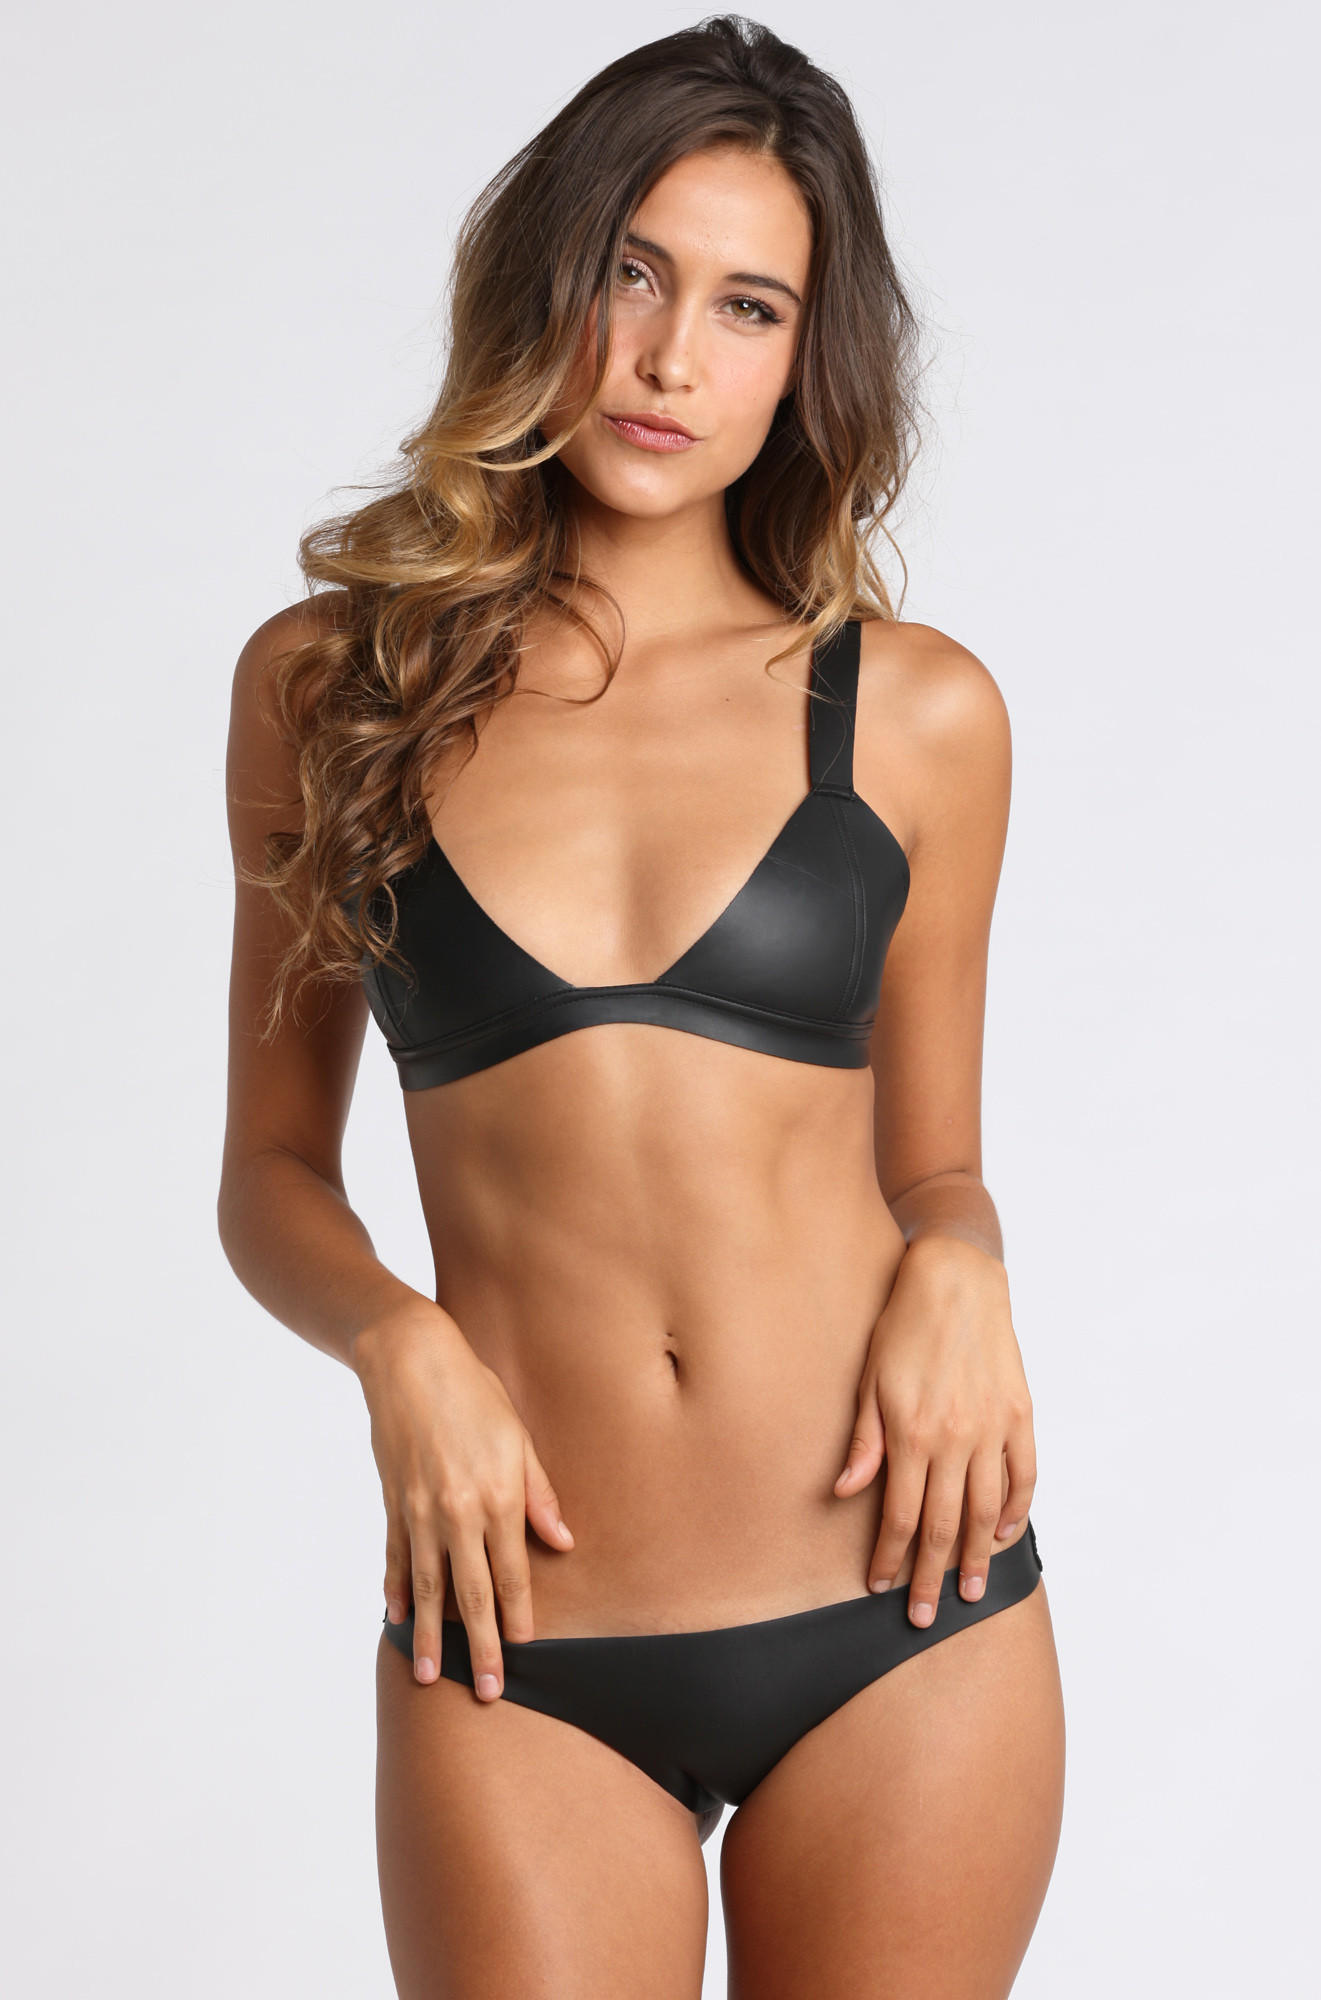 Hana Neoprene Bikini Top From ISHINE365